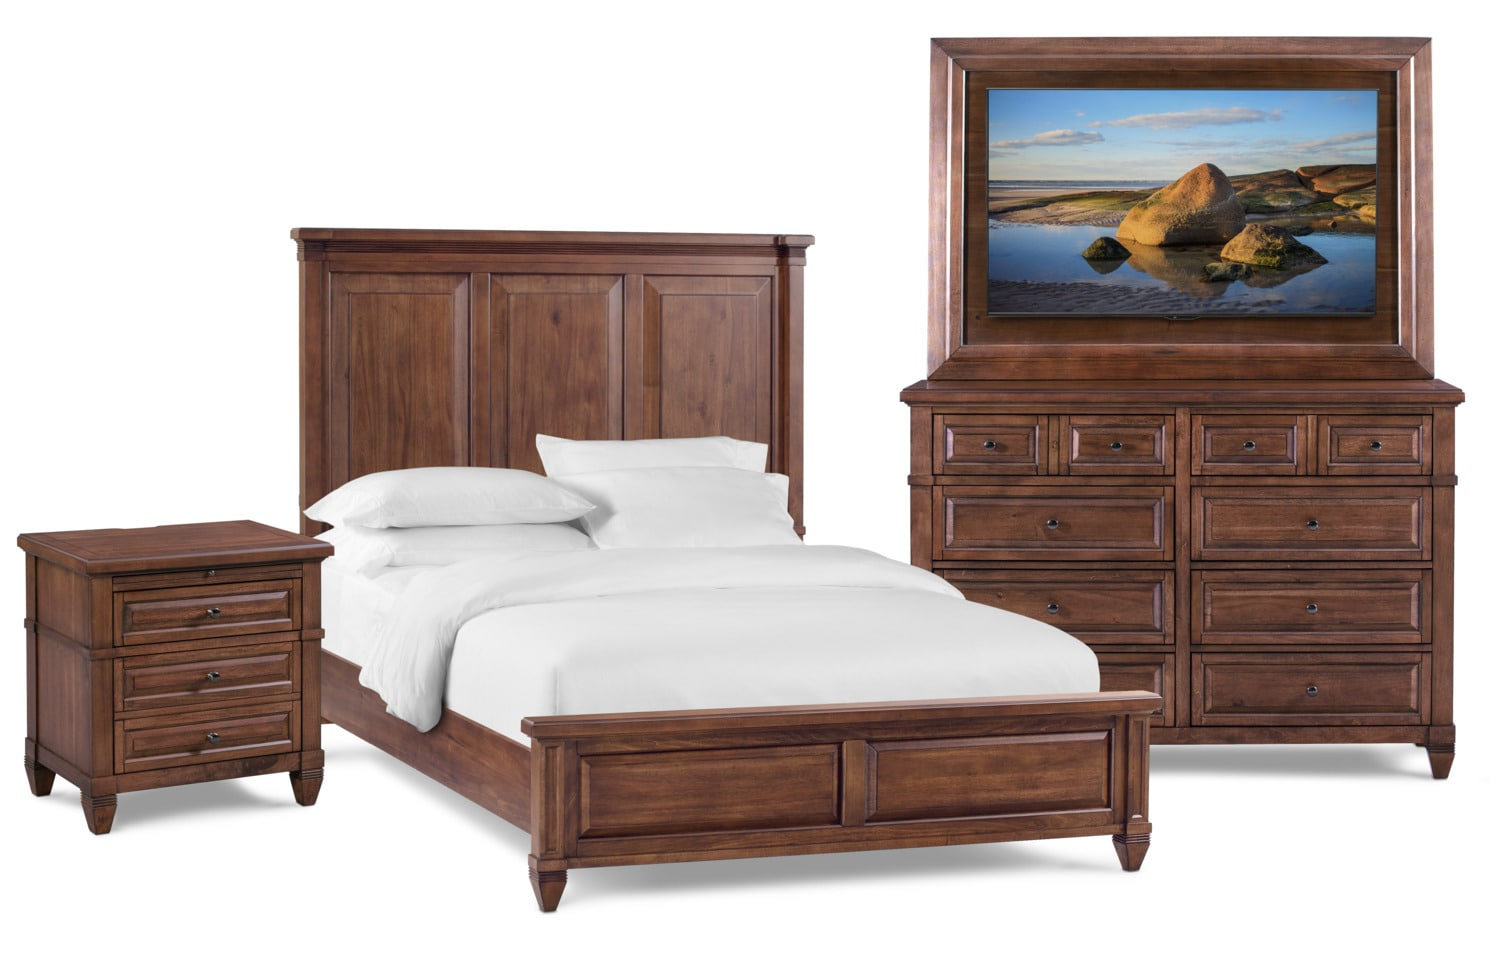 Bedroom Furniture - Rosalie 6-Piece Bedroom Set with TV Mount, Dresser and Mirror